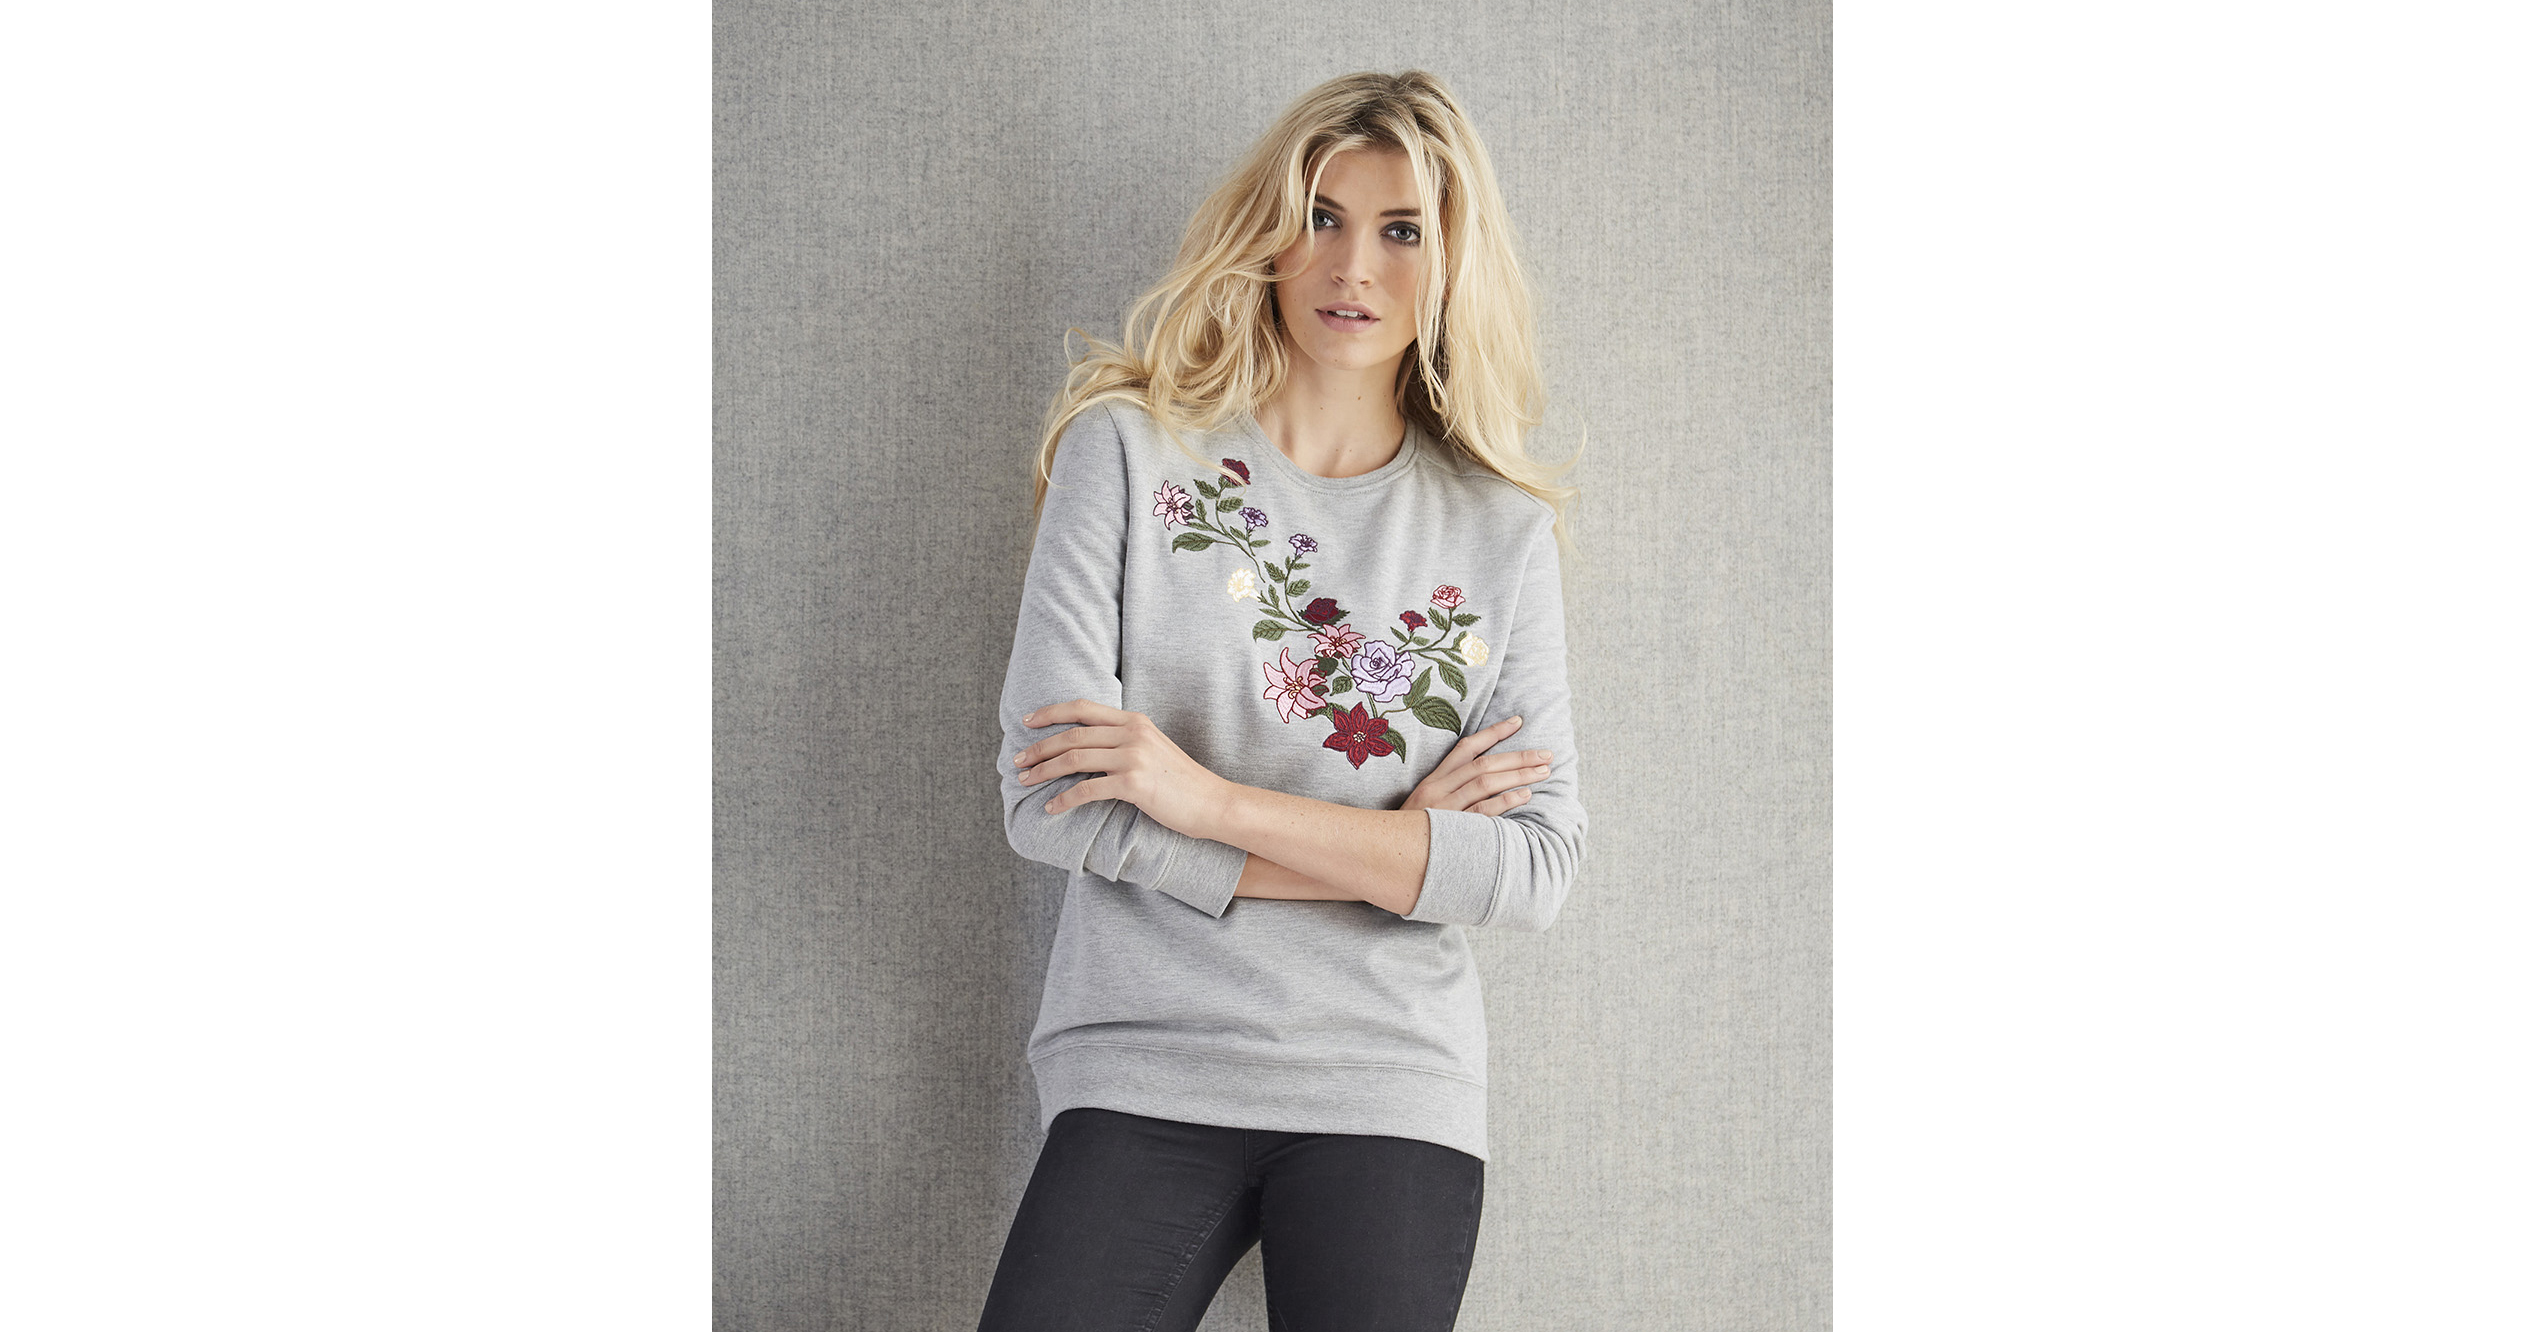 model wearing Cotton Edits Embroidered Sweatshirt and Jeans